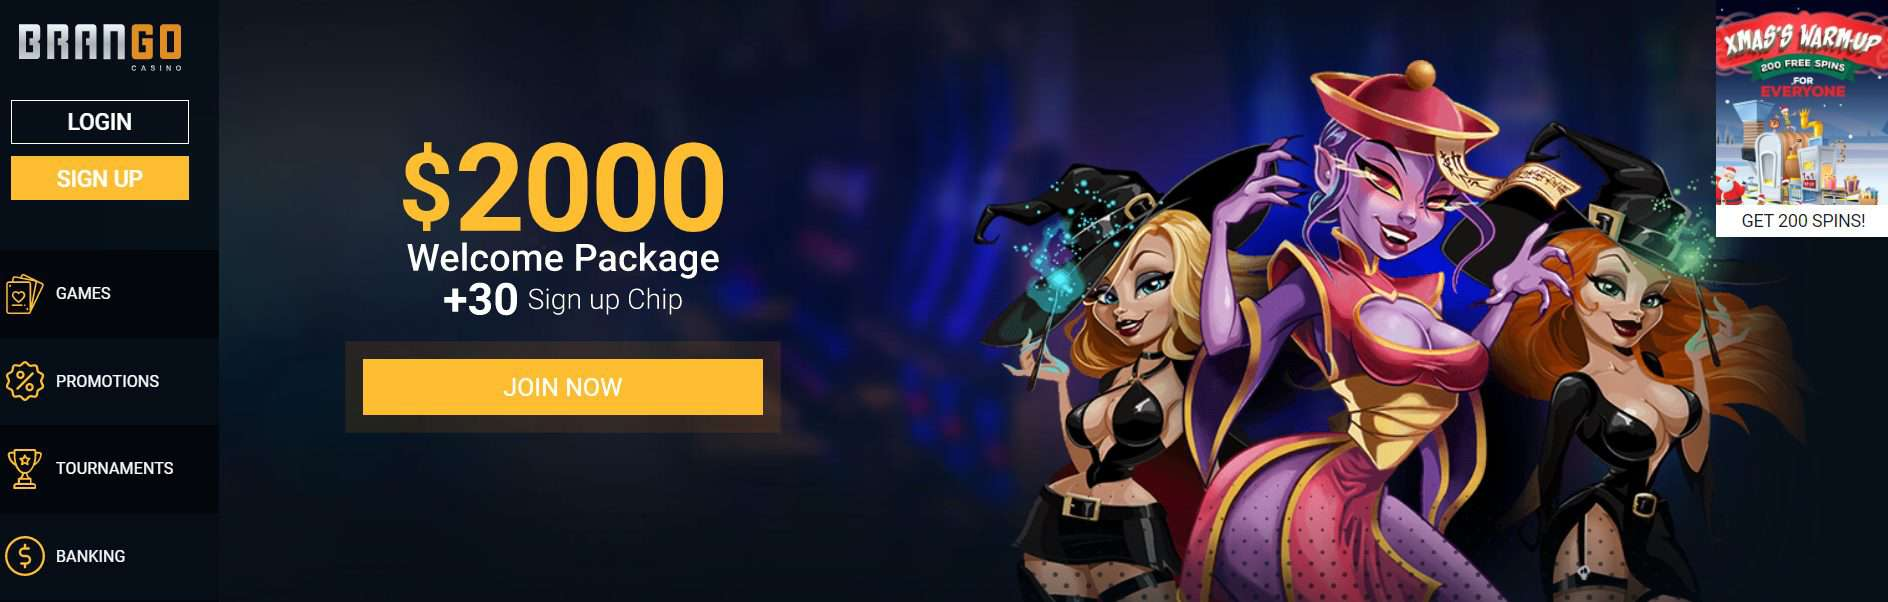 Casino Brango Homepage